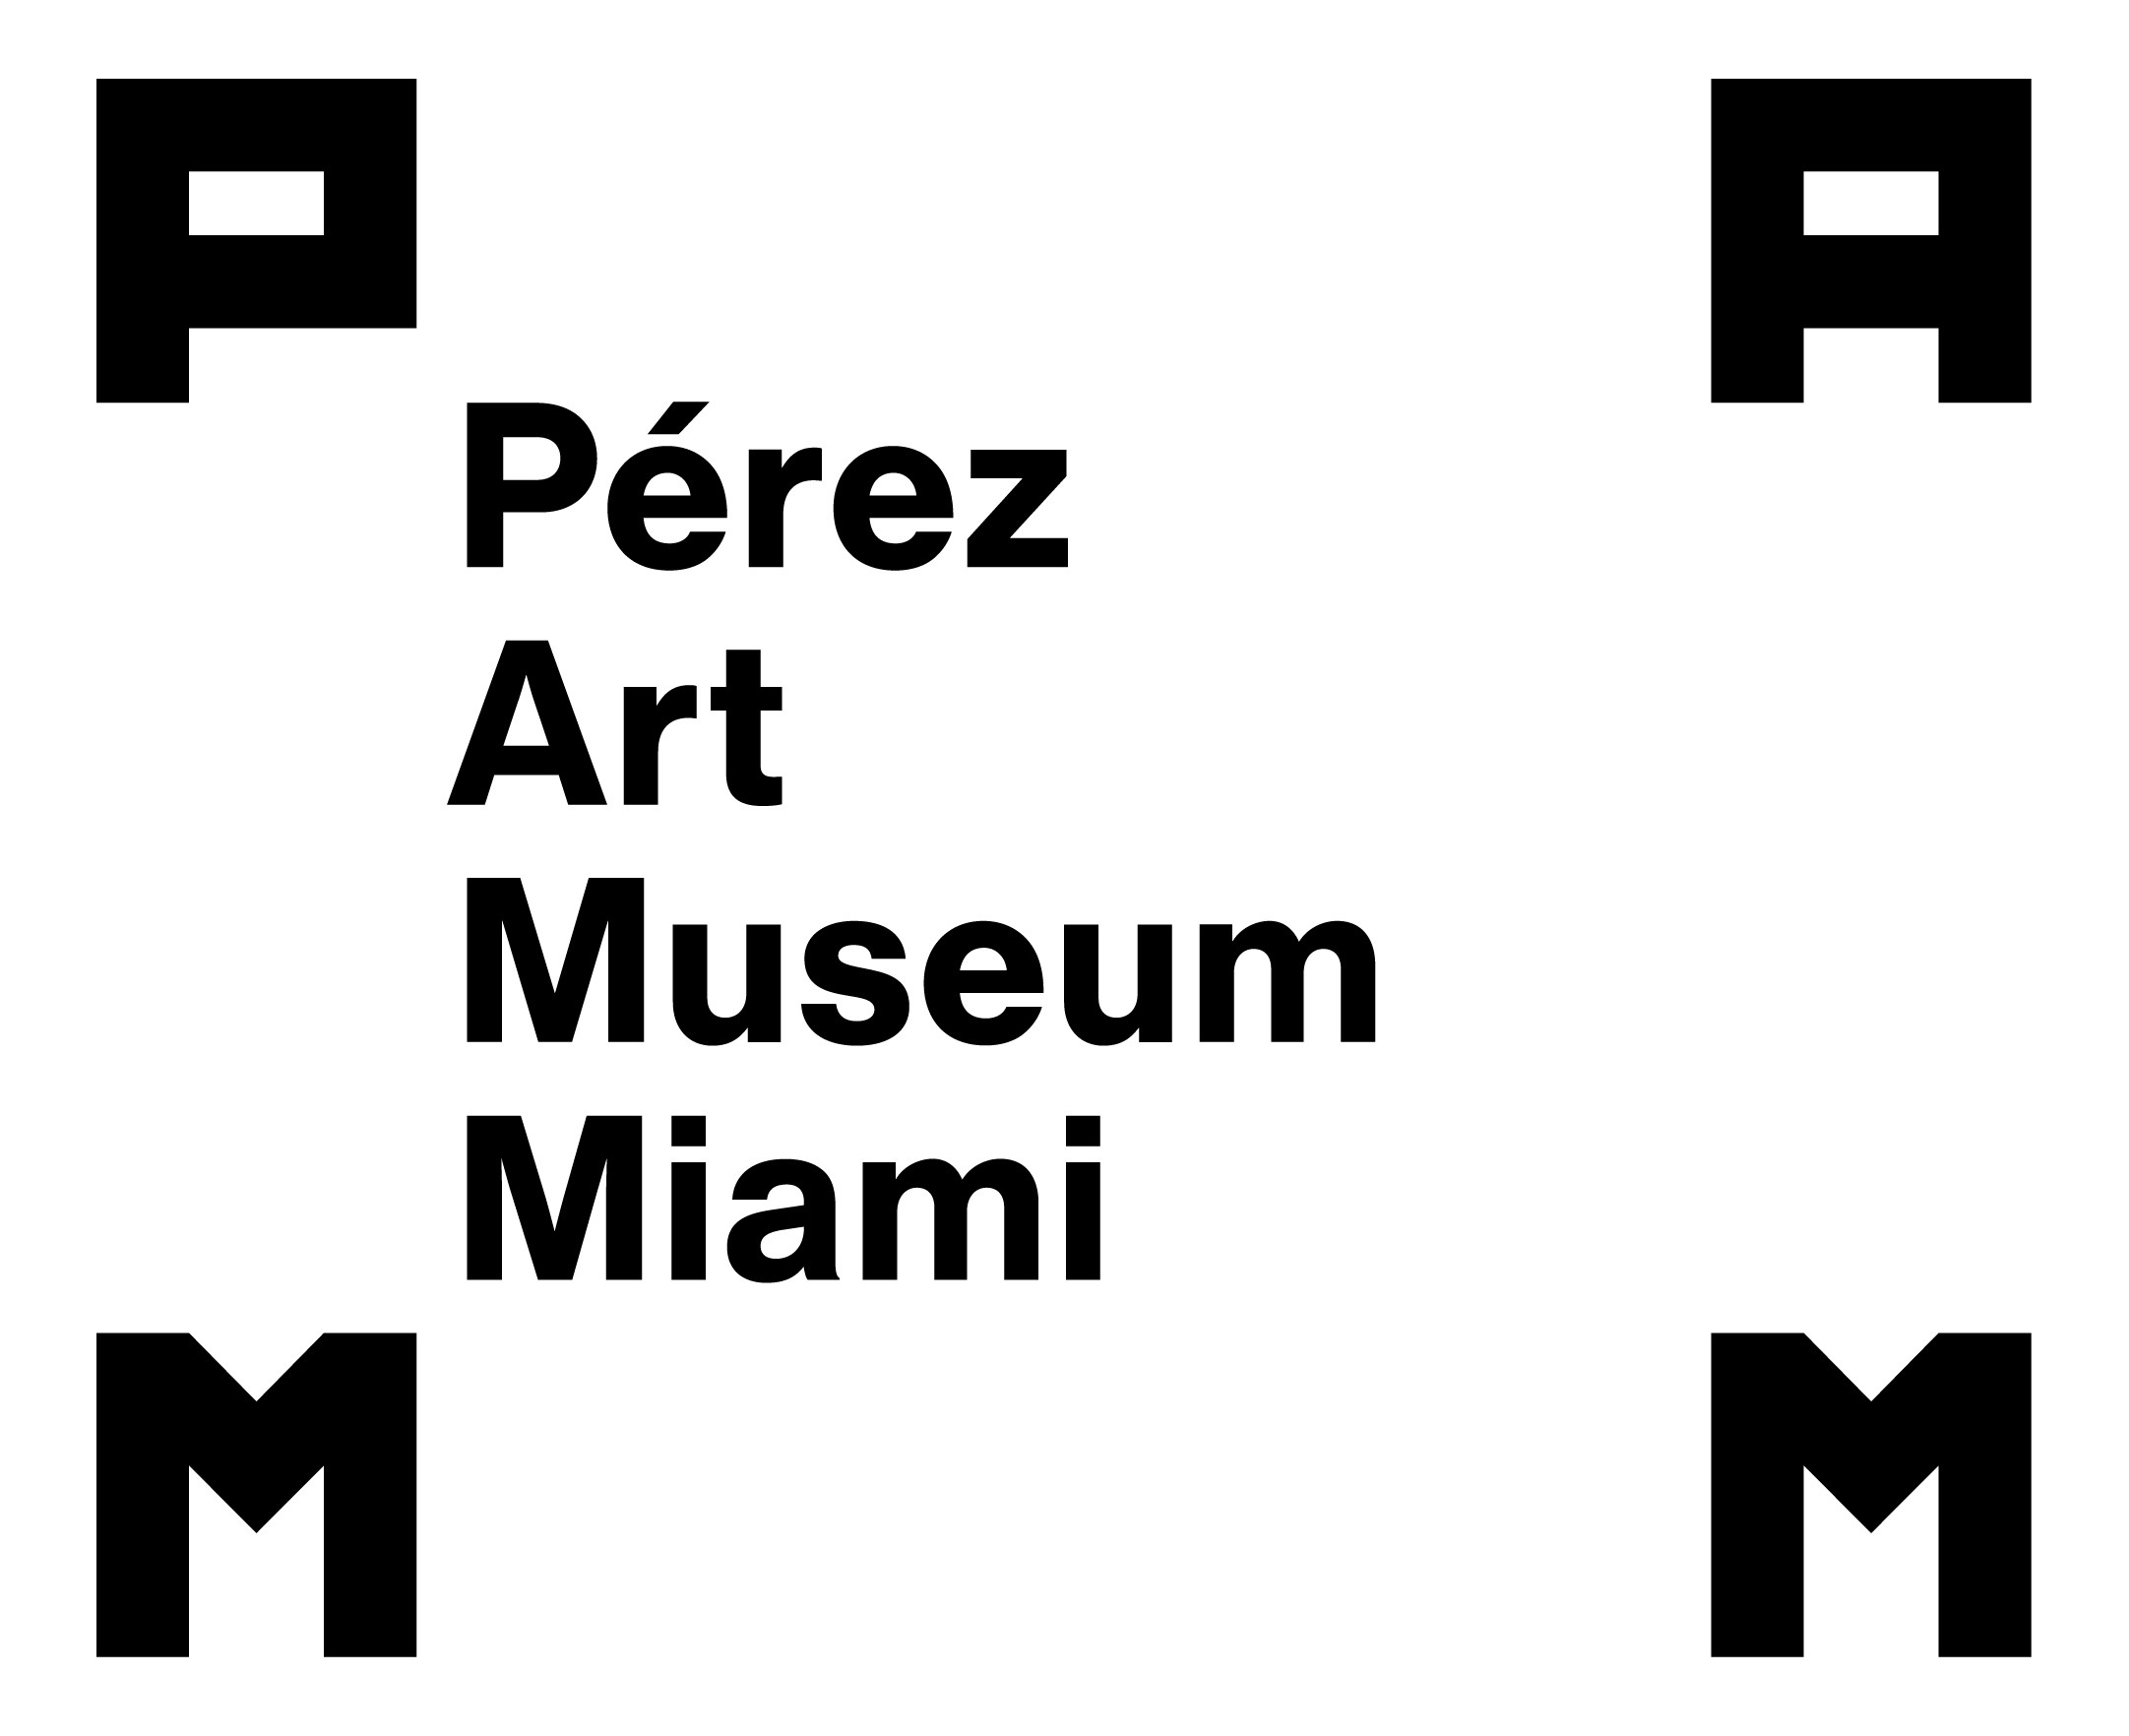 Jorge M Perez Art Museum of Miami-Dade County, Inc.